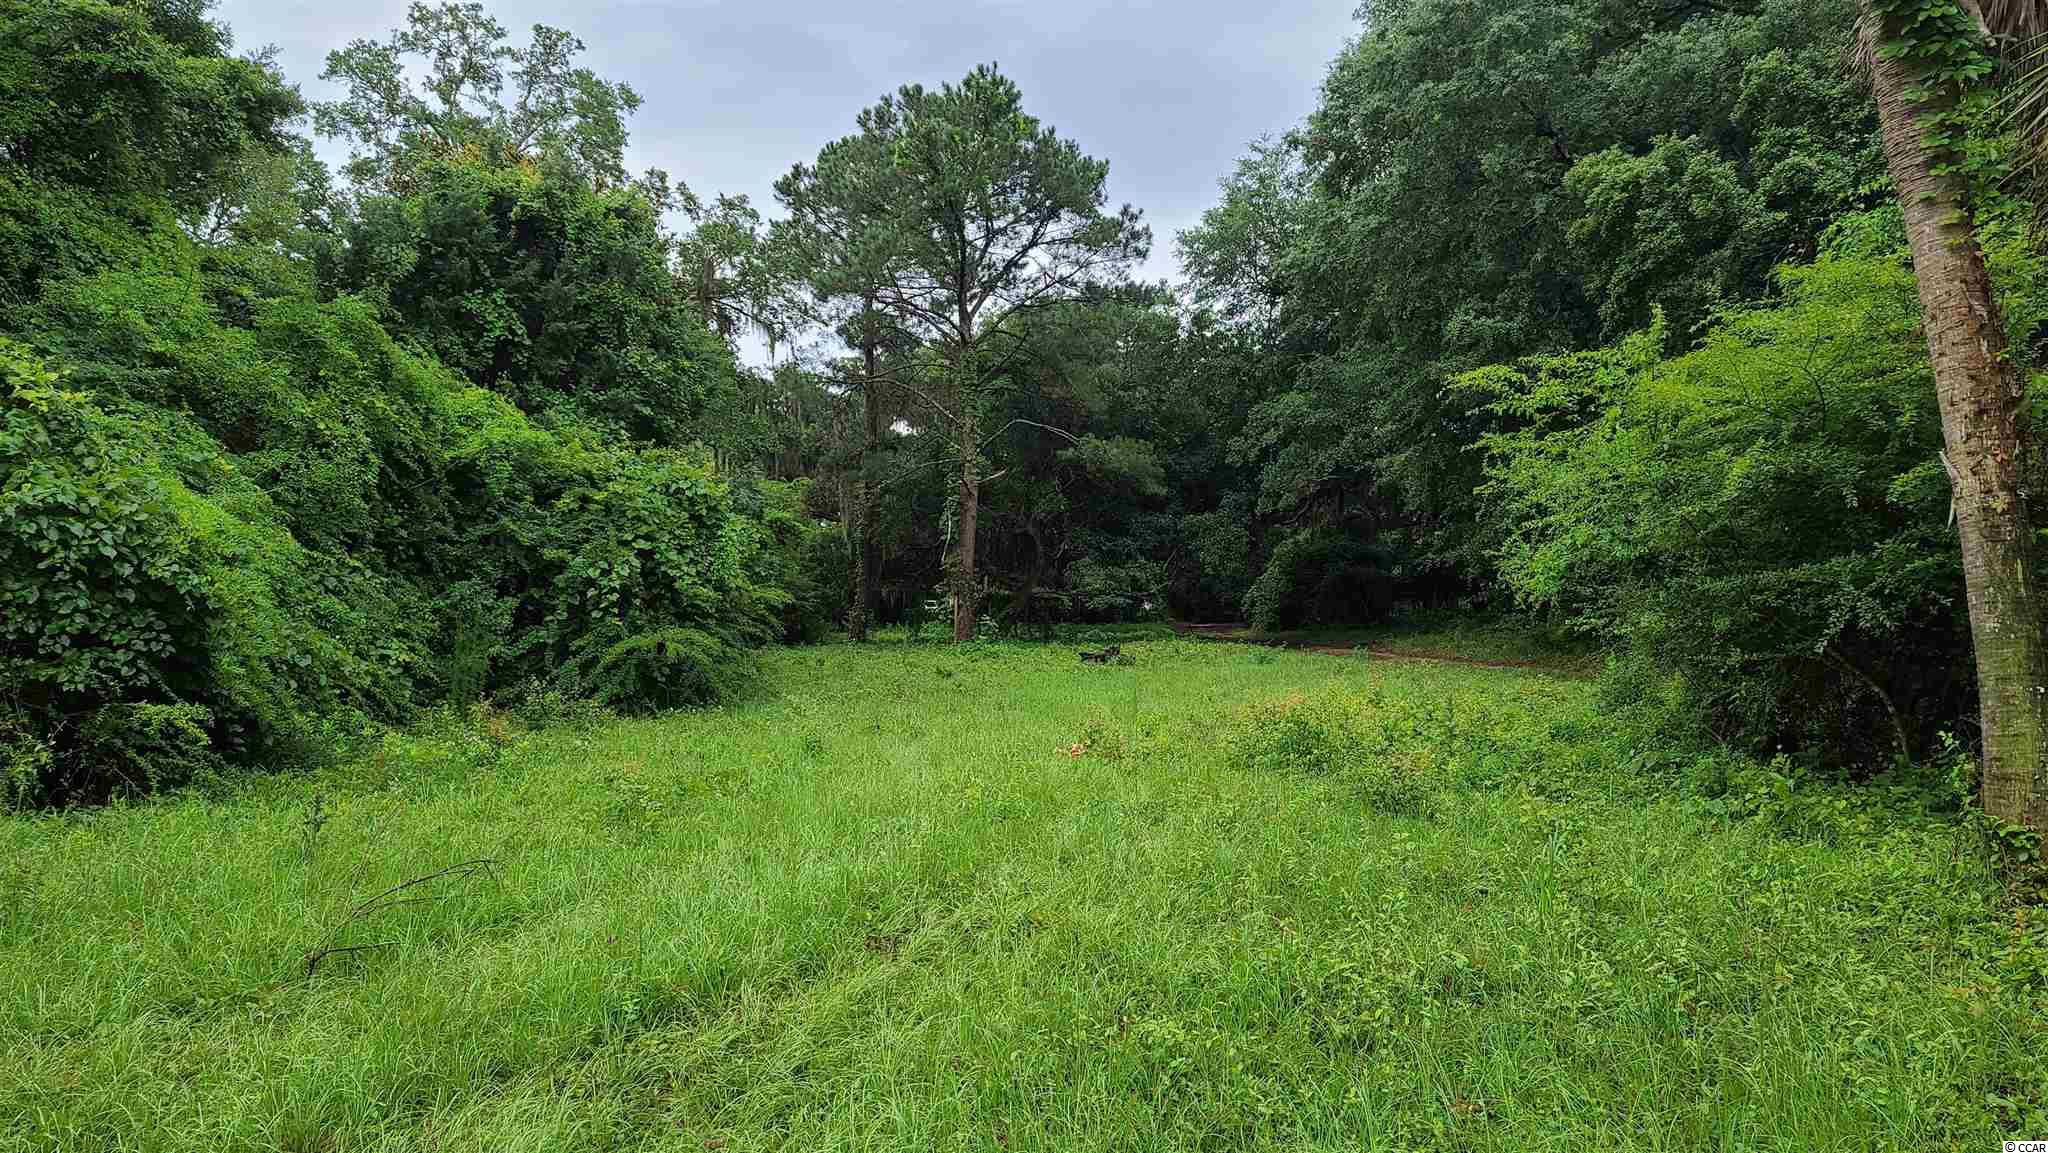 This beautiful 0.47-acre lot has approximately 105' of frontage along Sunnyside Avenue. It is located less than 0.25 mile from the inlet and just east of US Highway 17 Business, which provides easy access to the Grand Strand area.